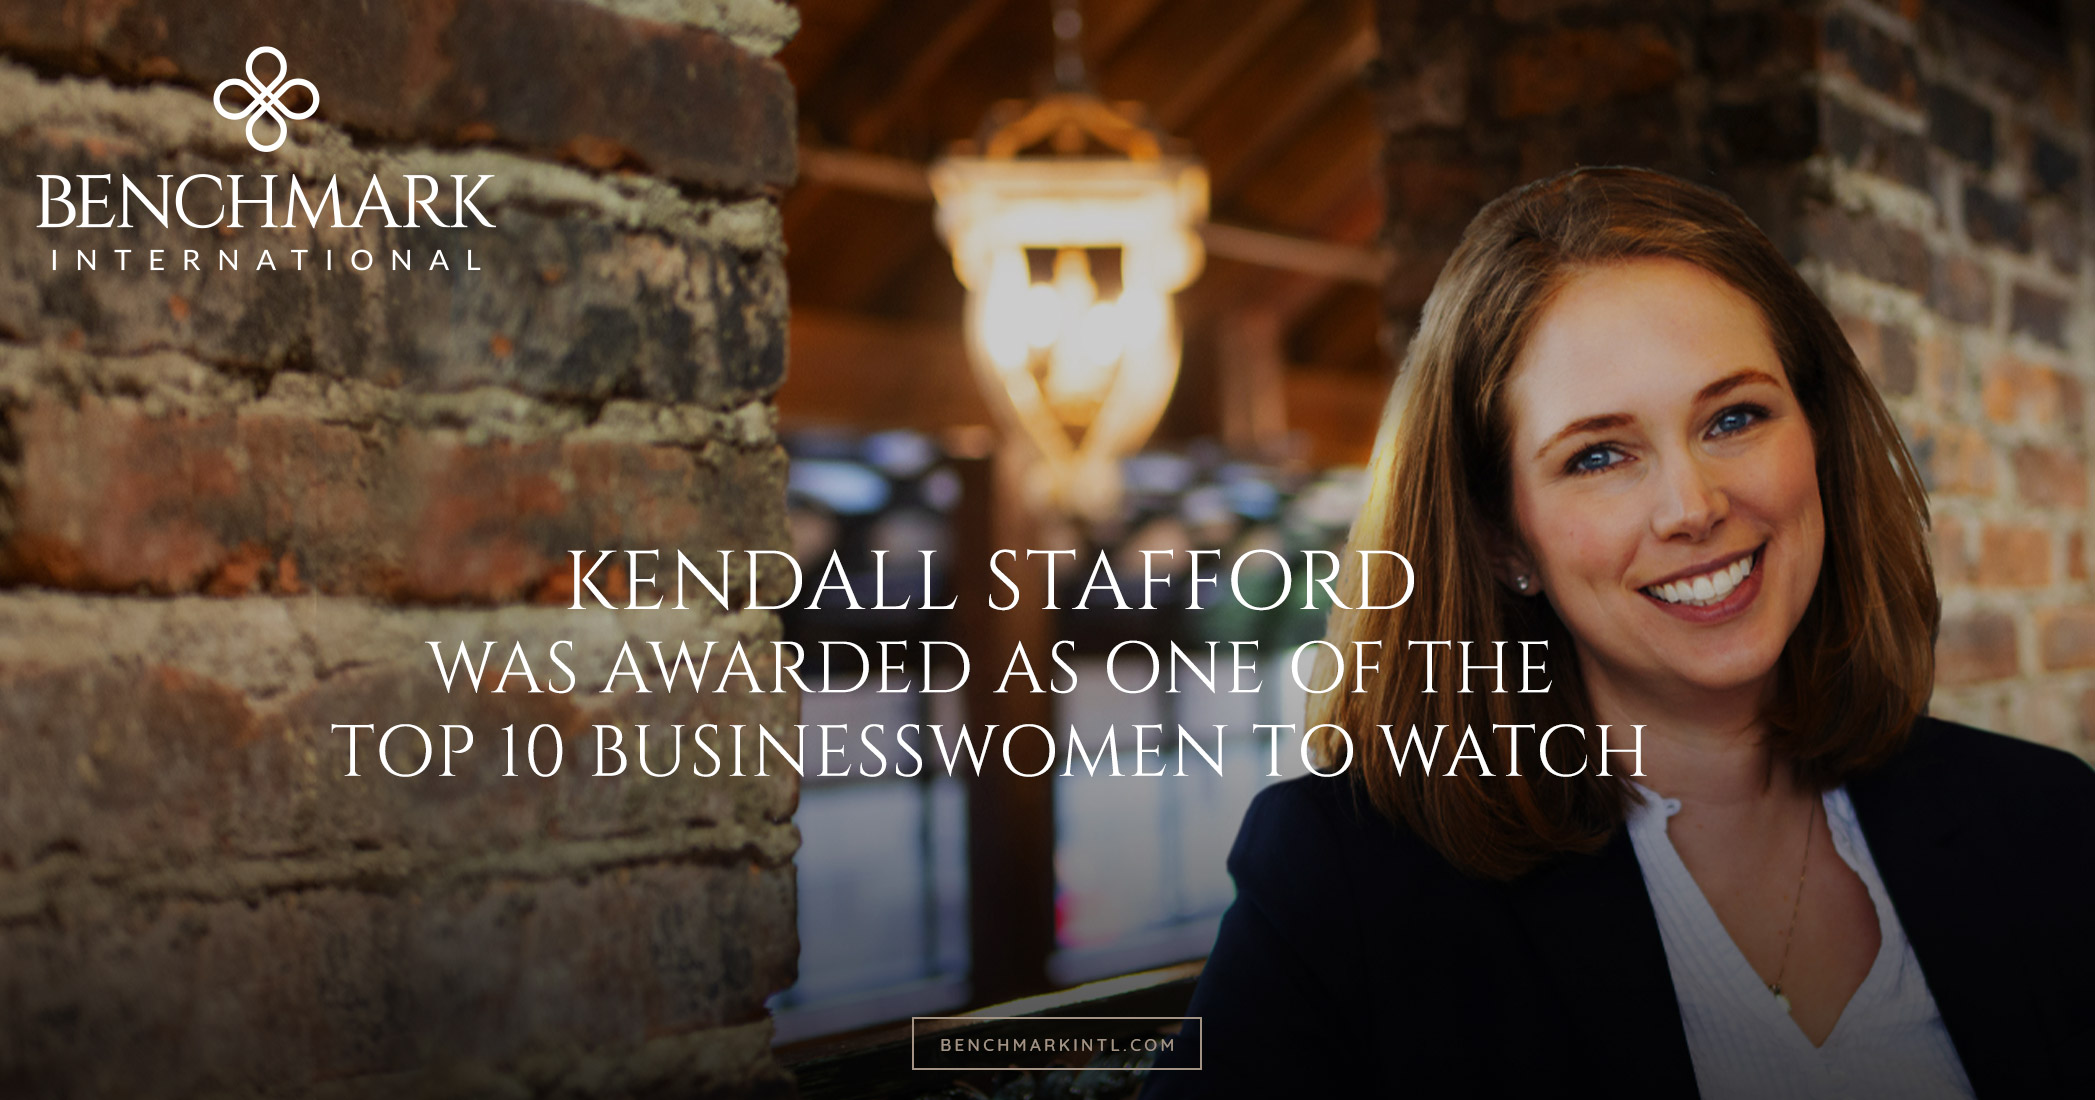 Congratulations to Kendall Stafford for Being Awarded as One of the Top 10 Most Successful Businesswomen to Watch